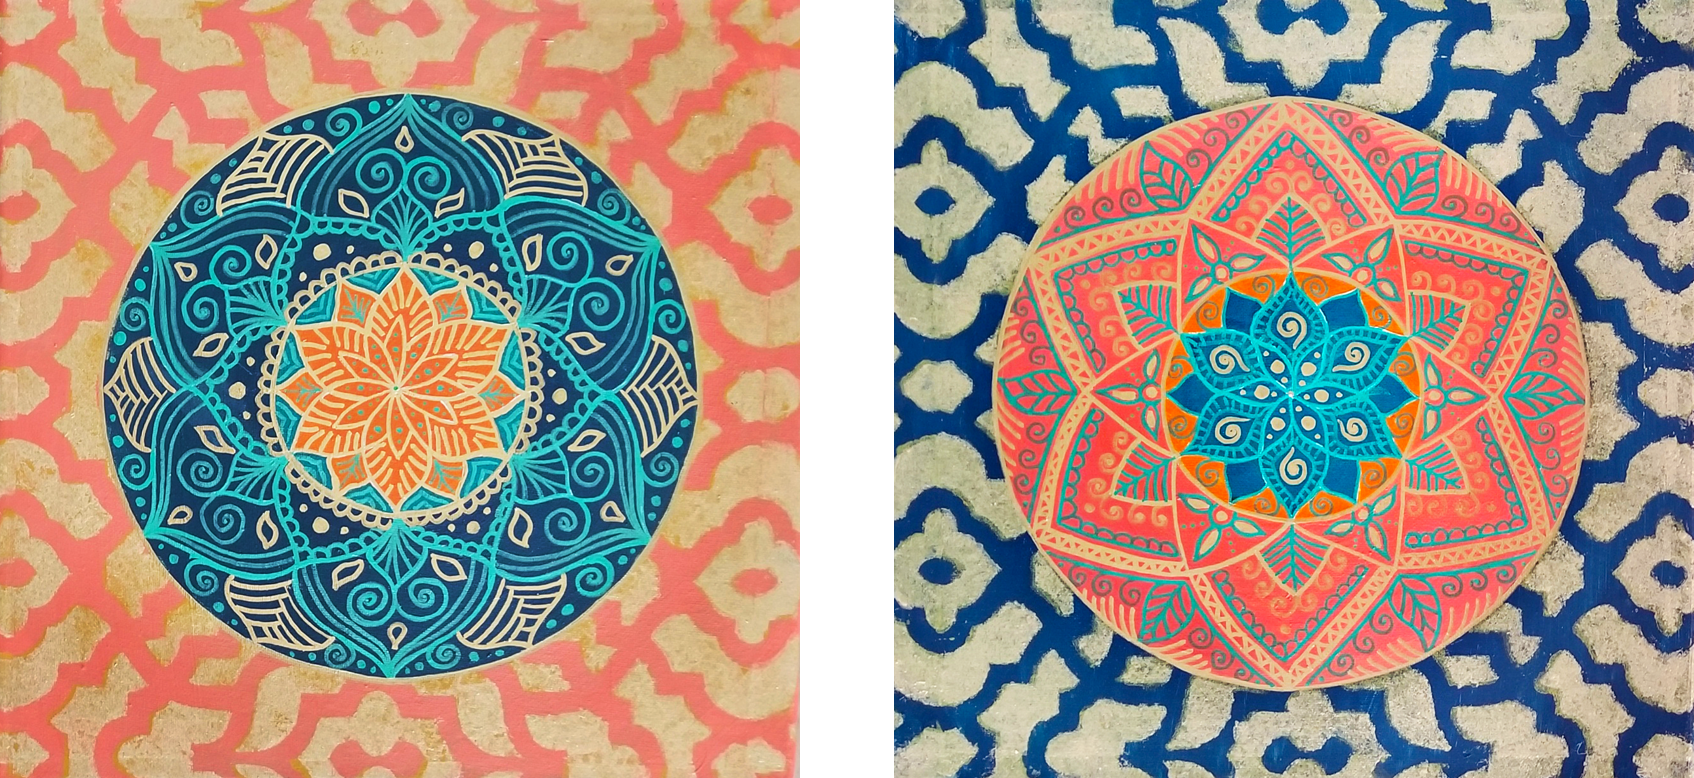 """Moroccan Vibe I & II (Available) - 2 x Acrylic and ink on canvas 12"""" X 12""""Price for the pair: $200"""